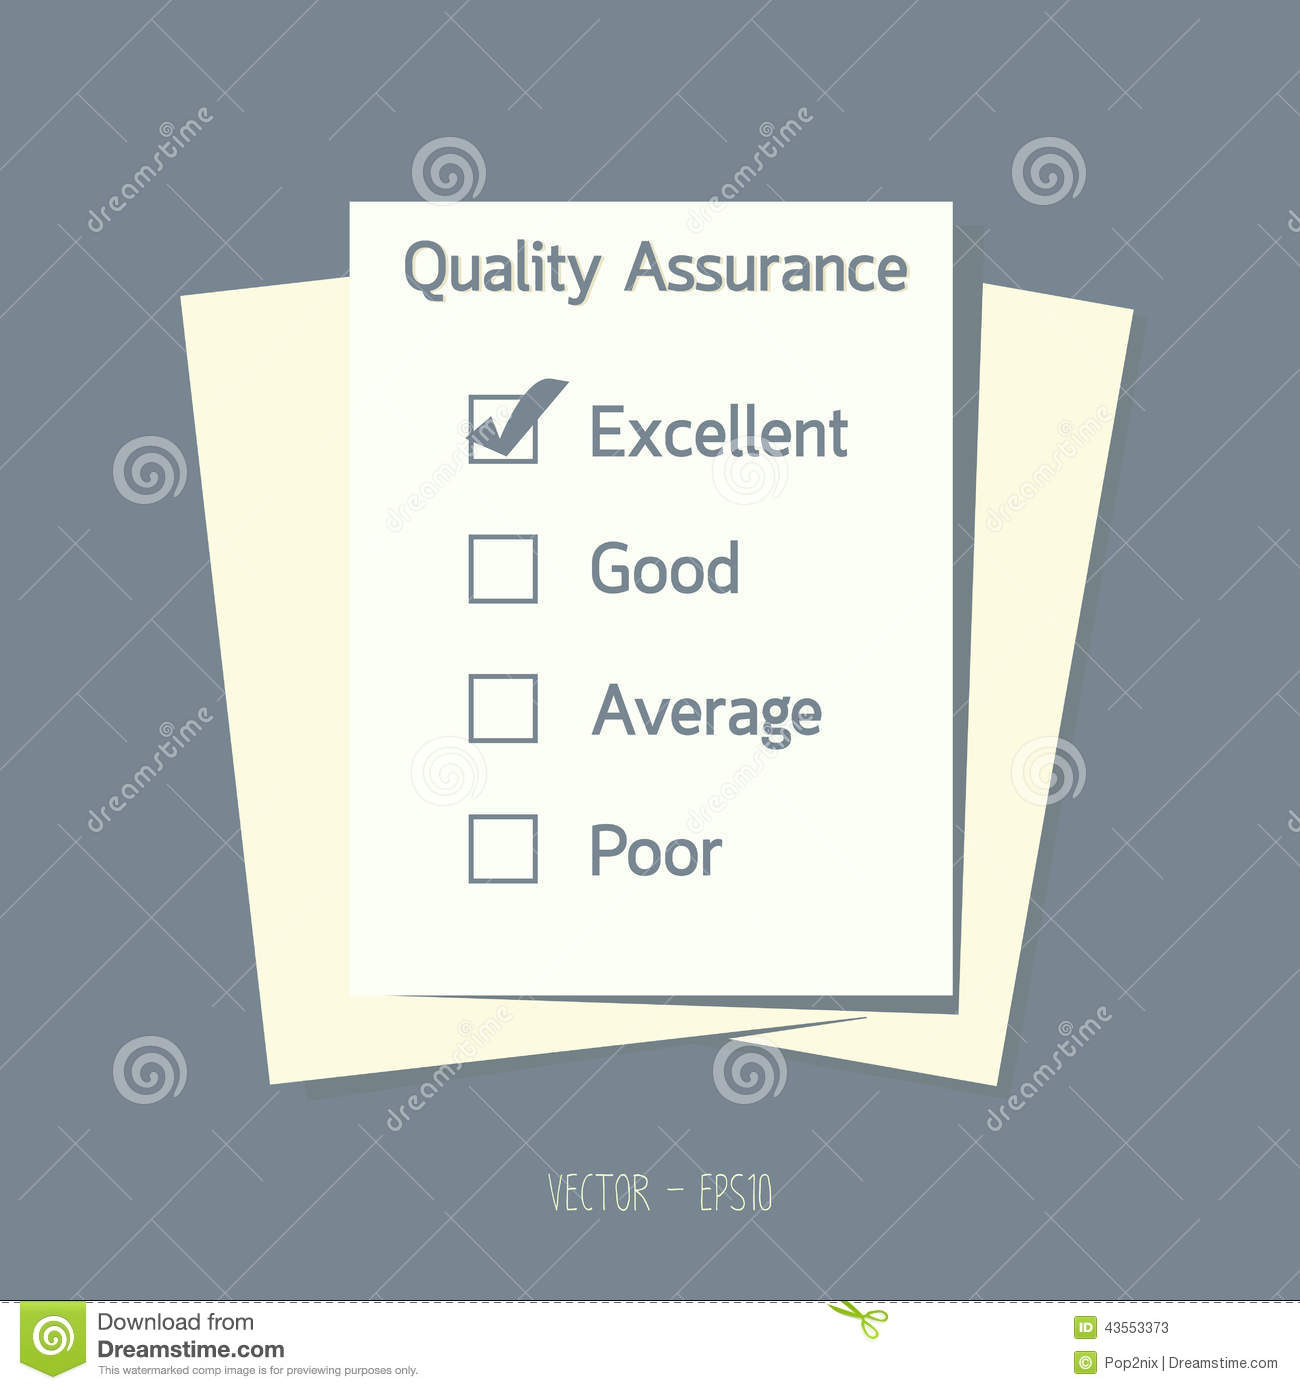 Quality Assurance Essay Sample